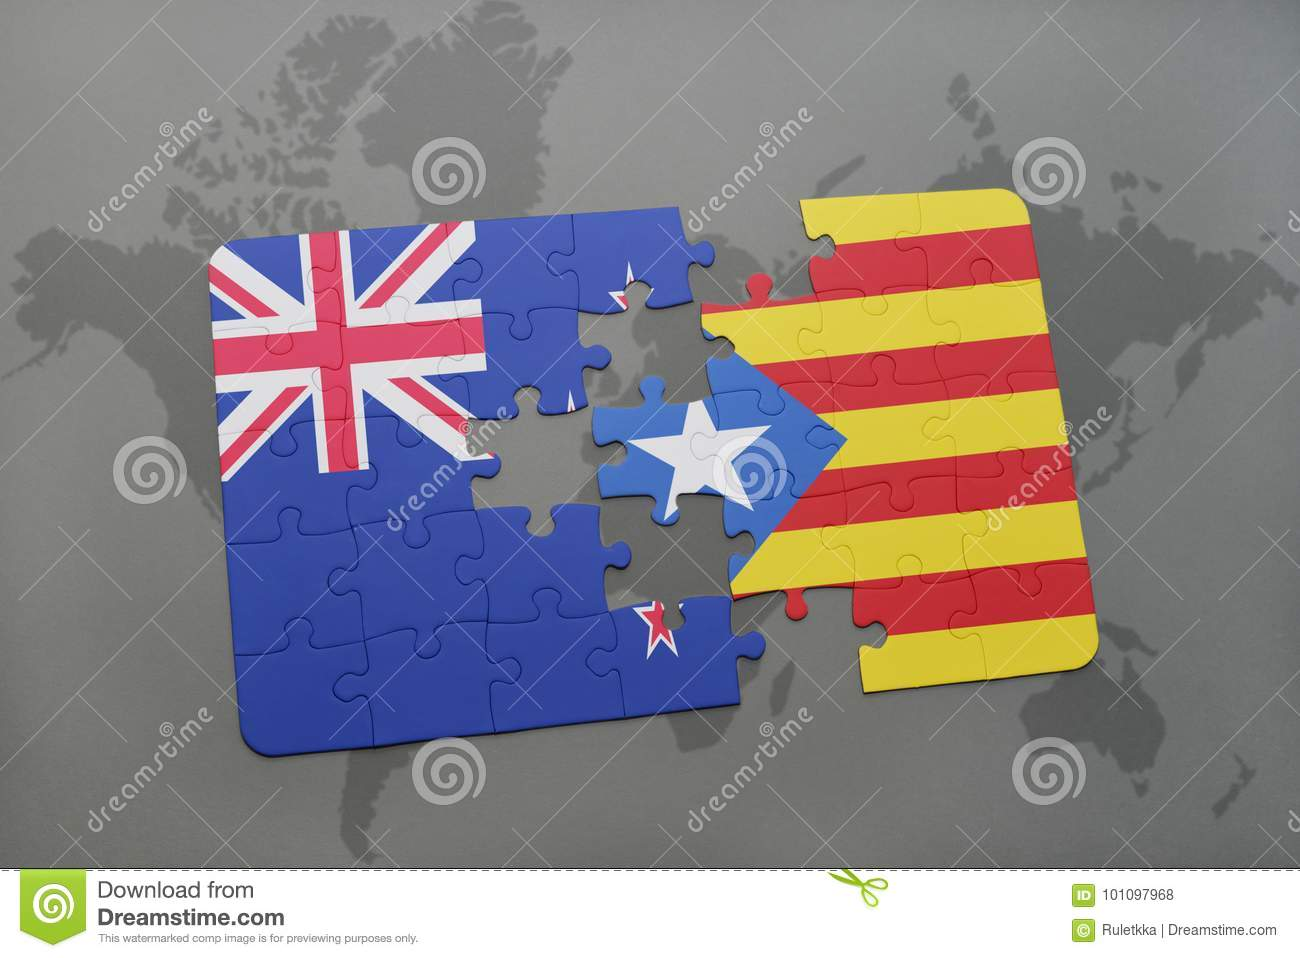 Puzzle with the national flag of new zealand and catalonia on a download puzzle with the national flag of new zealand and catalonia on a world map background gumiabroncs Image collections